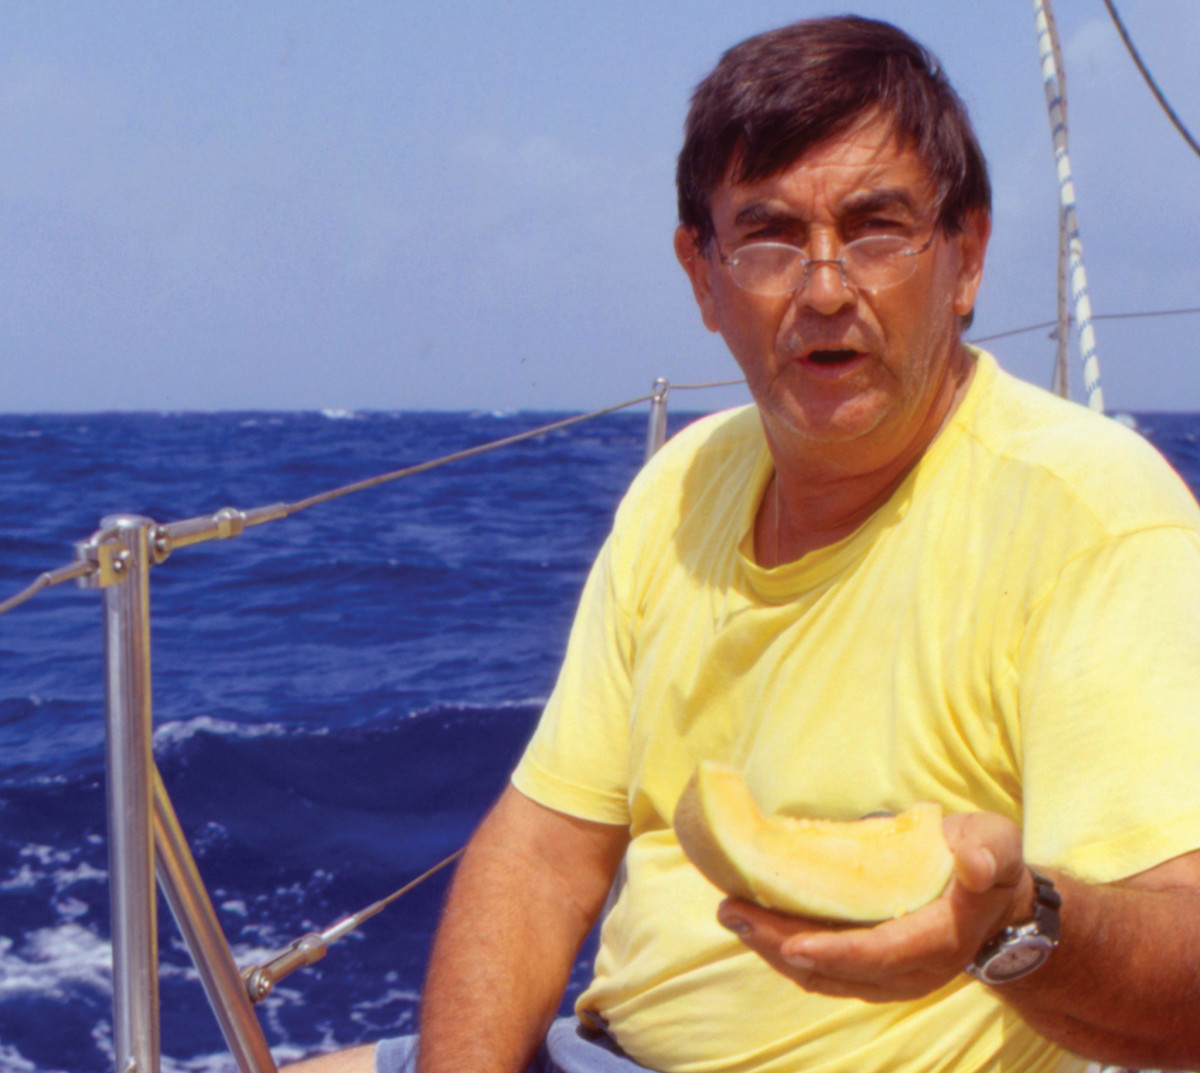 Eric Thiriez in a characteristic pose aboard Alegria, offering food to people